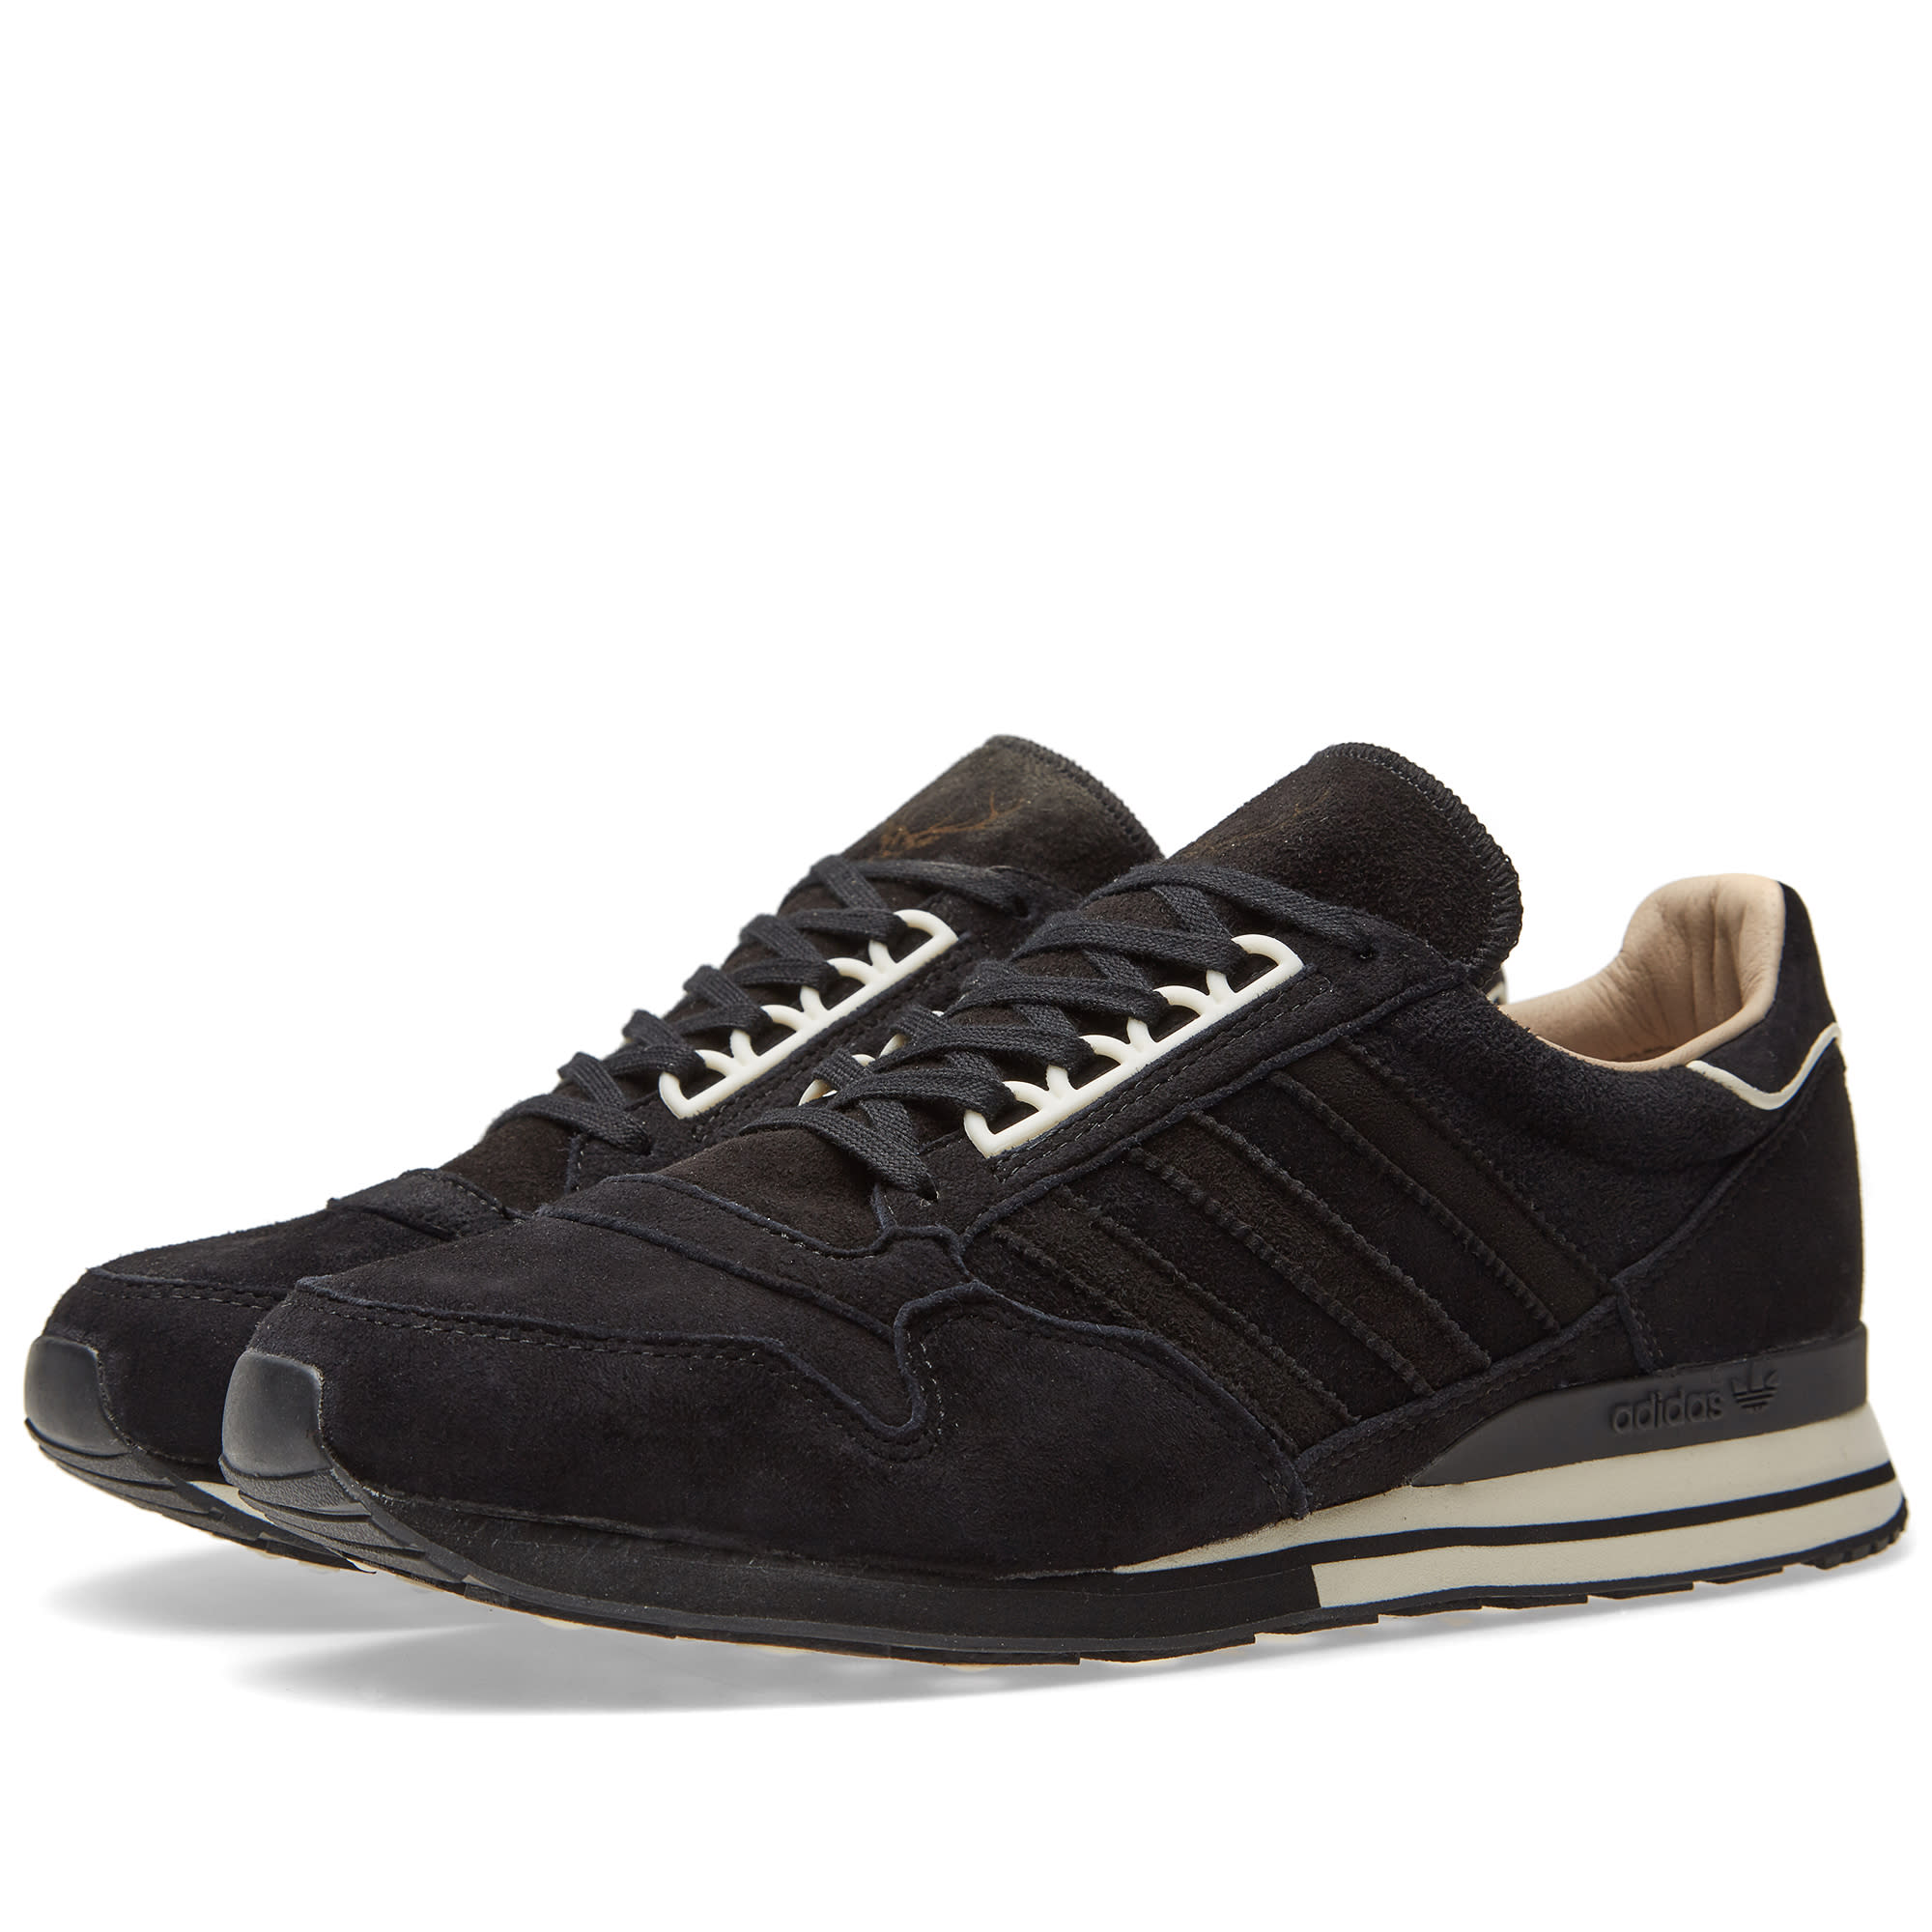 brand new 083b5 c3f55 Adidas ZX 500 OG Made in Germany